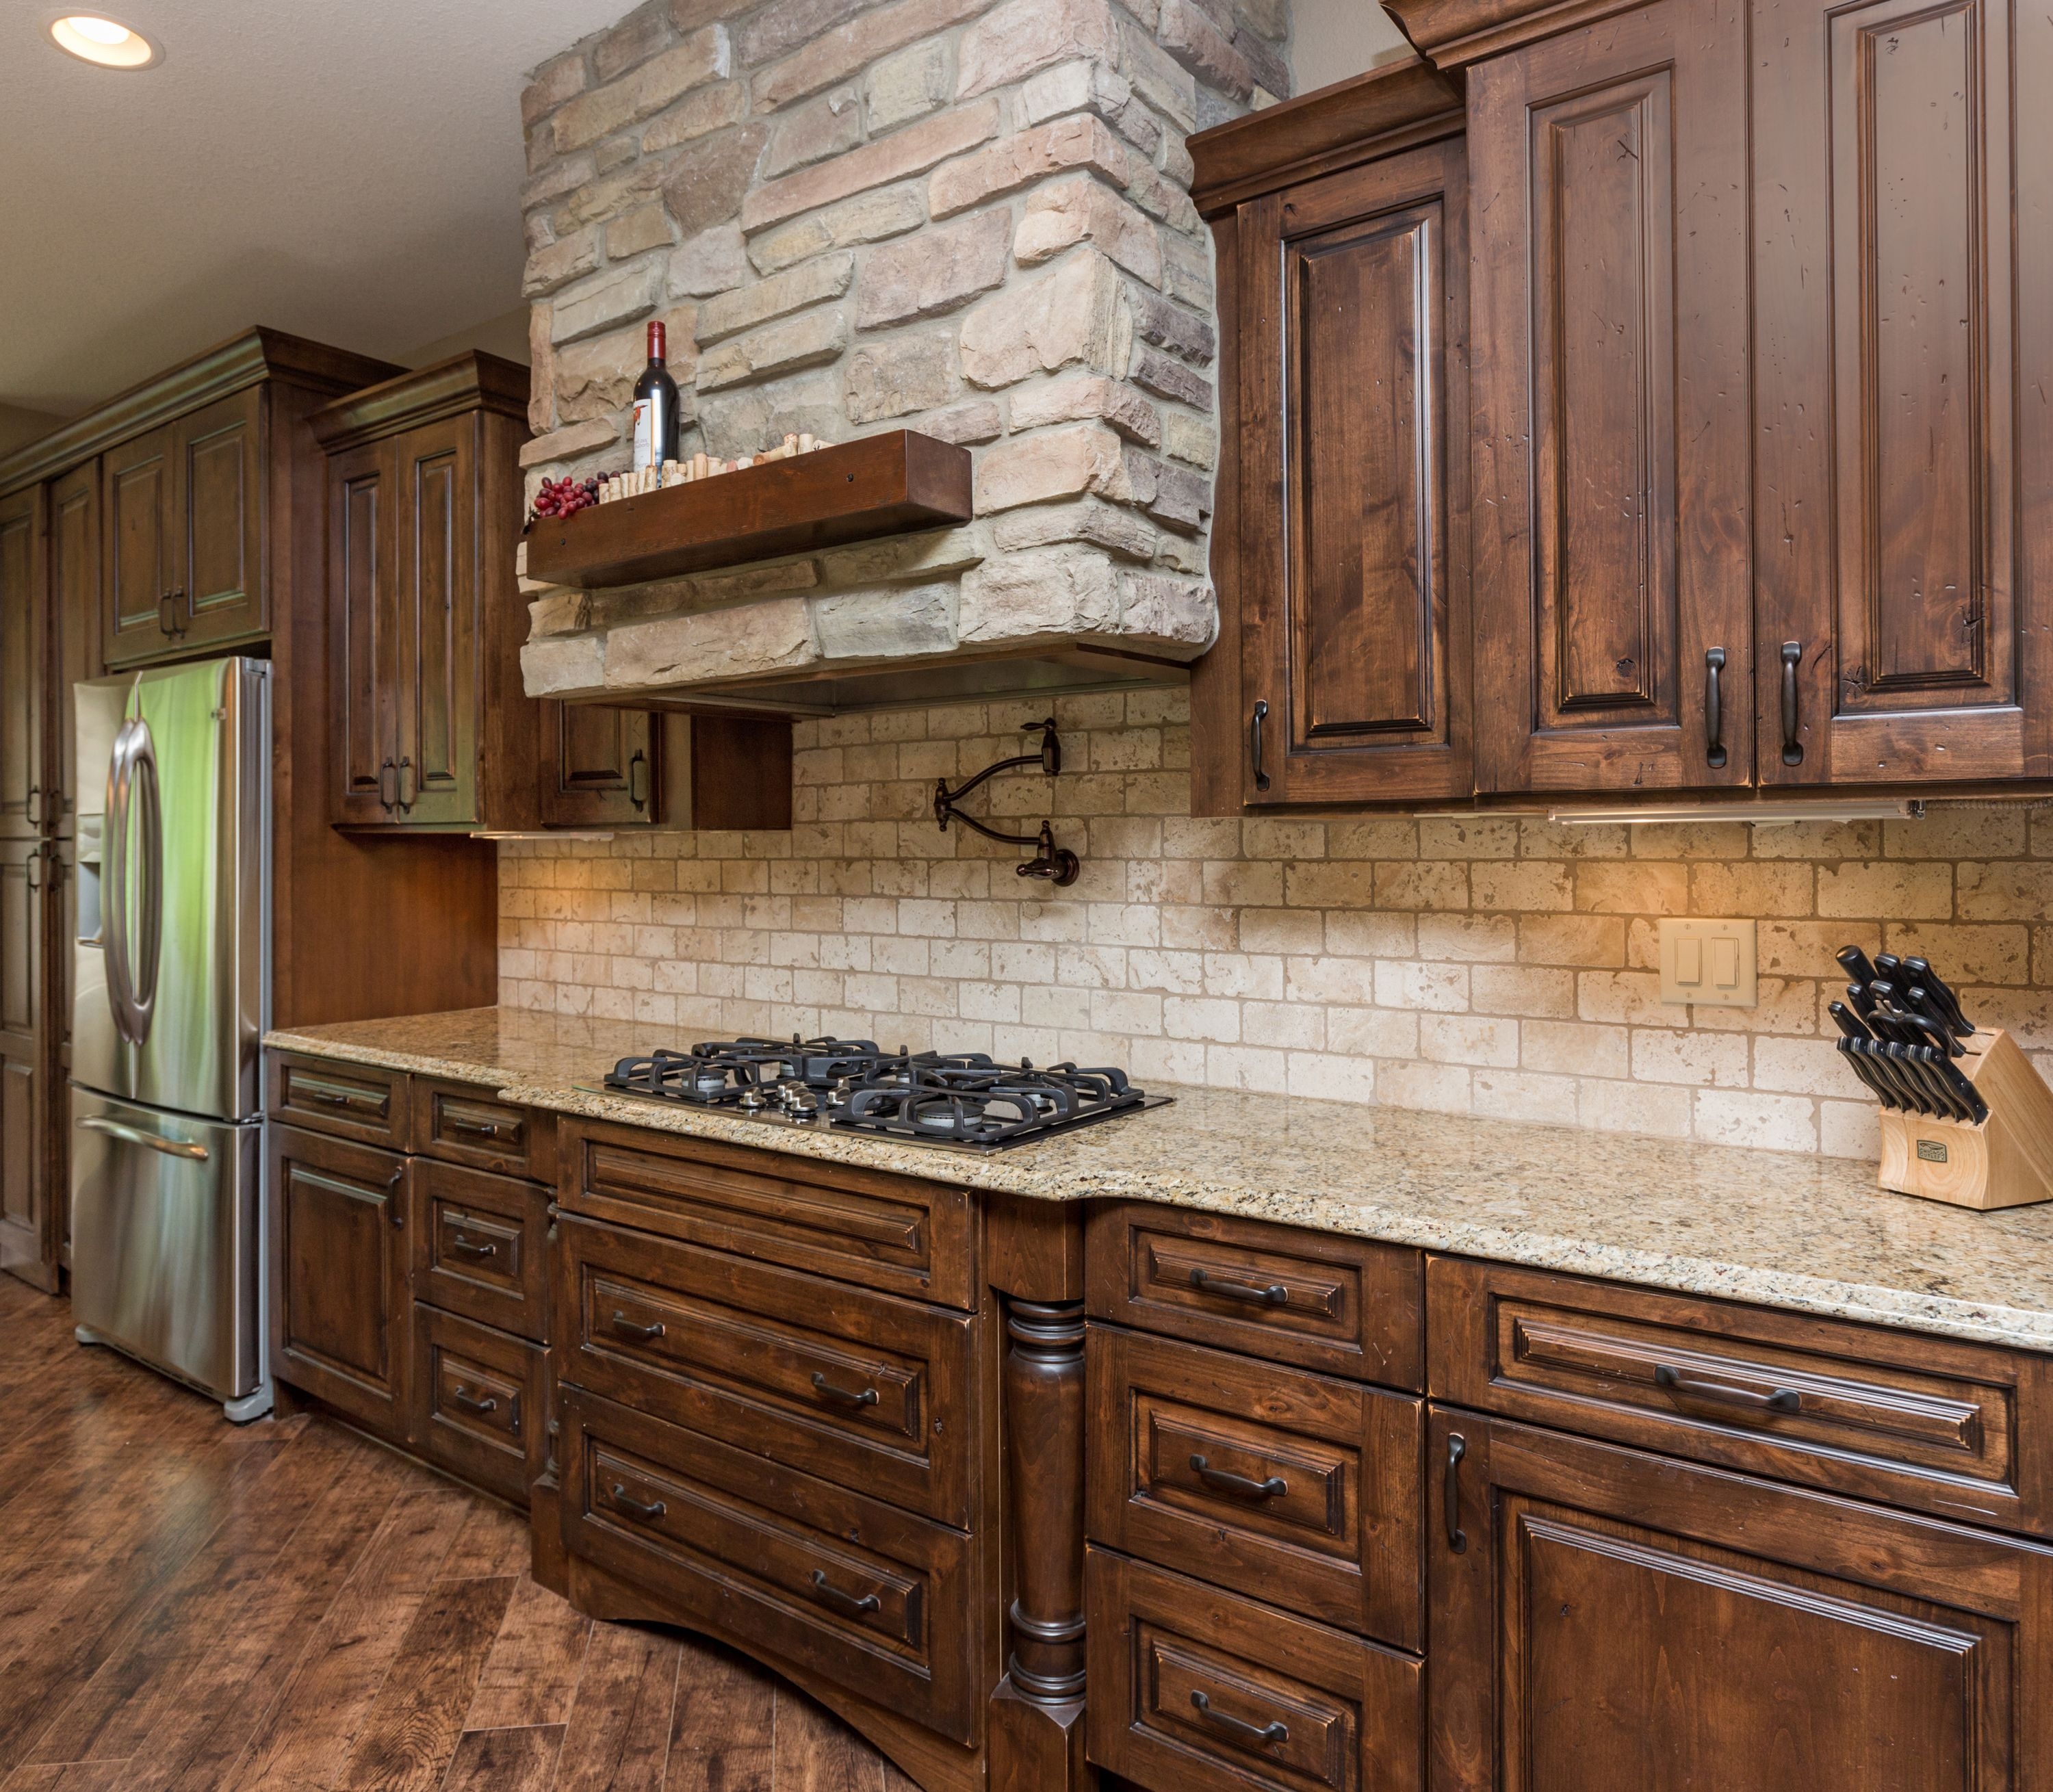 Granite Countertops Des Moines Stone Hood Vent With Wood Ledge Travertine Backsplash